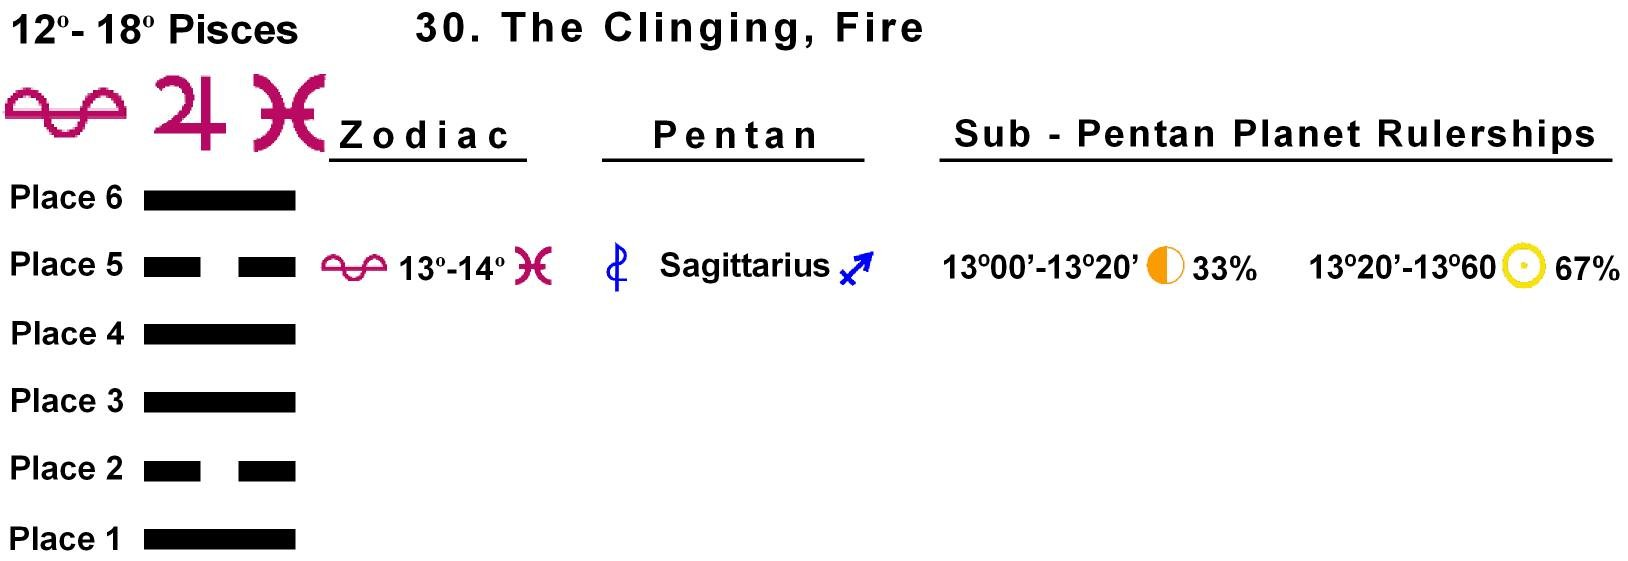 Pent-lines-12PI 13-14 Hx-30 The Clinging Fire